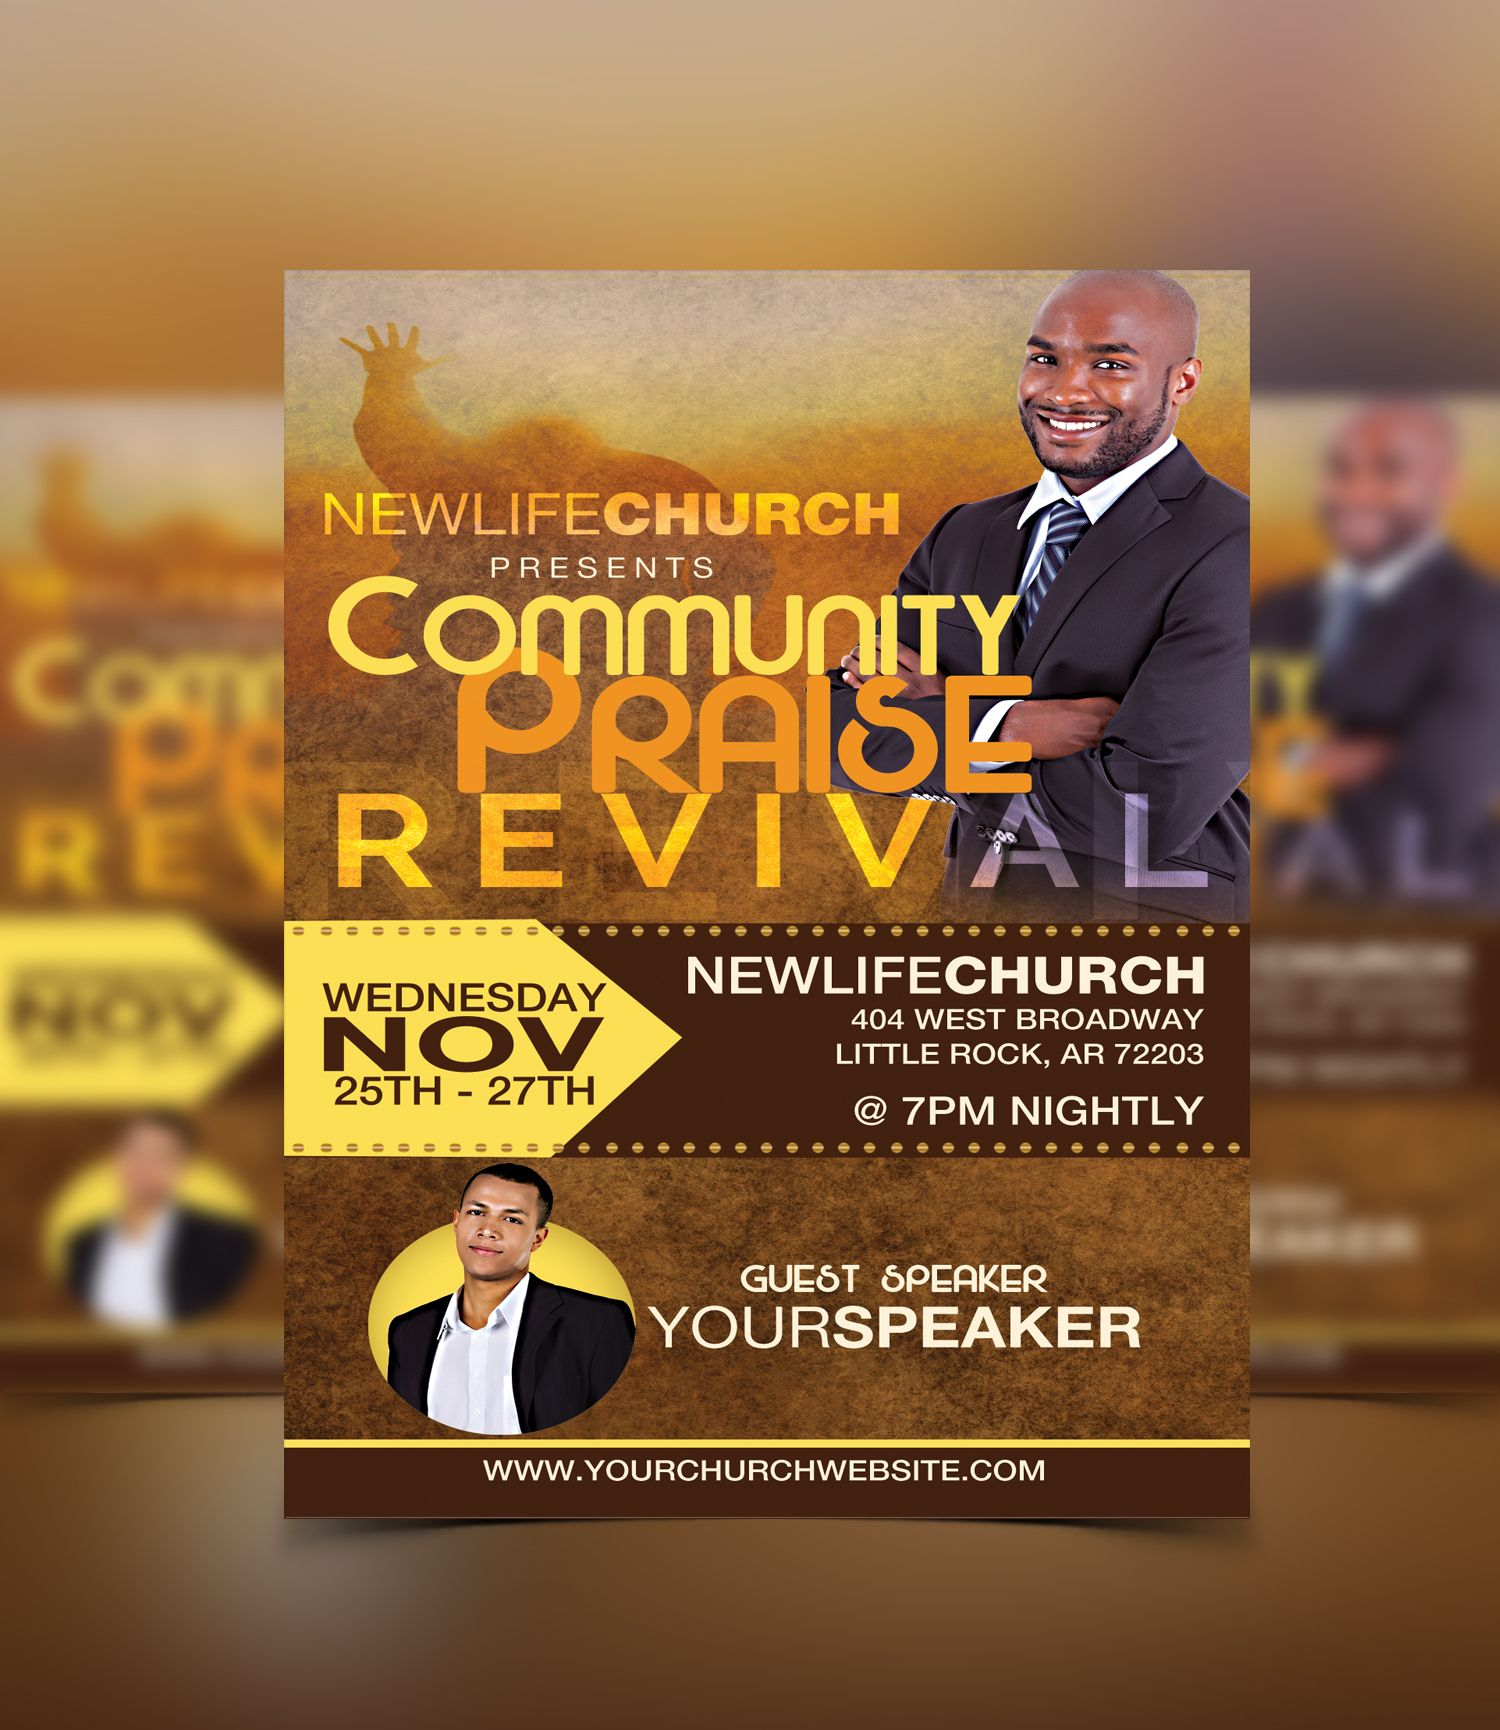 Revival Flyer Template #flyerthemes | Church Flyer Templates ...